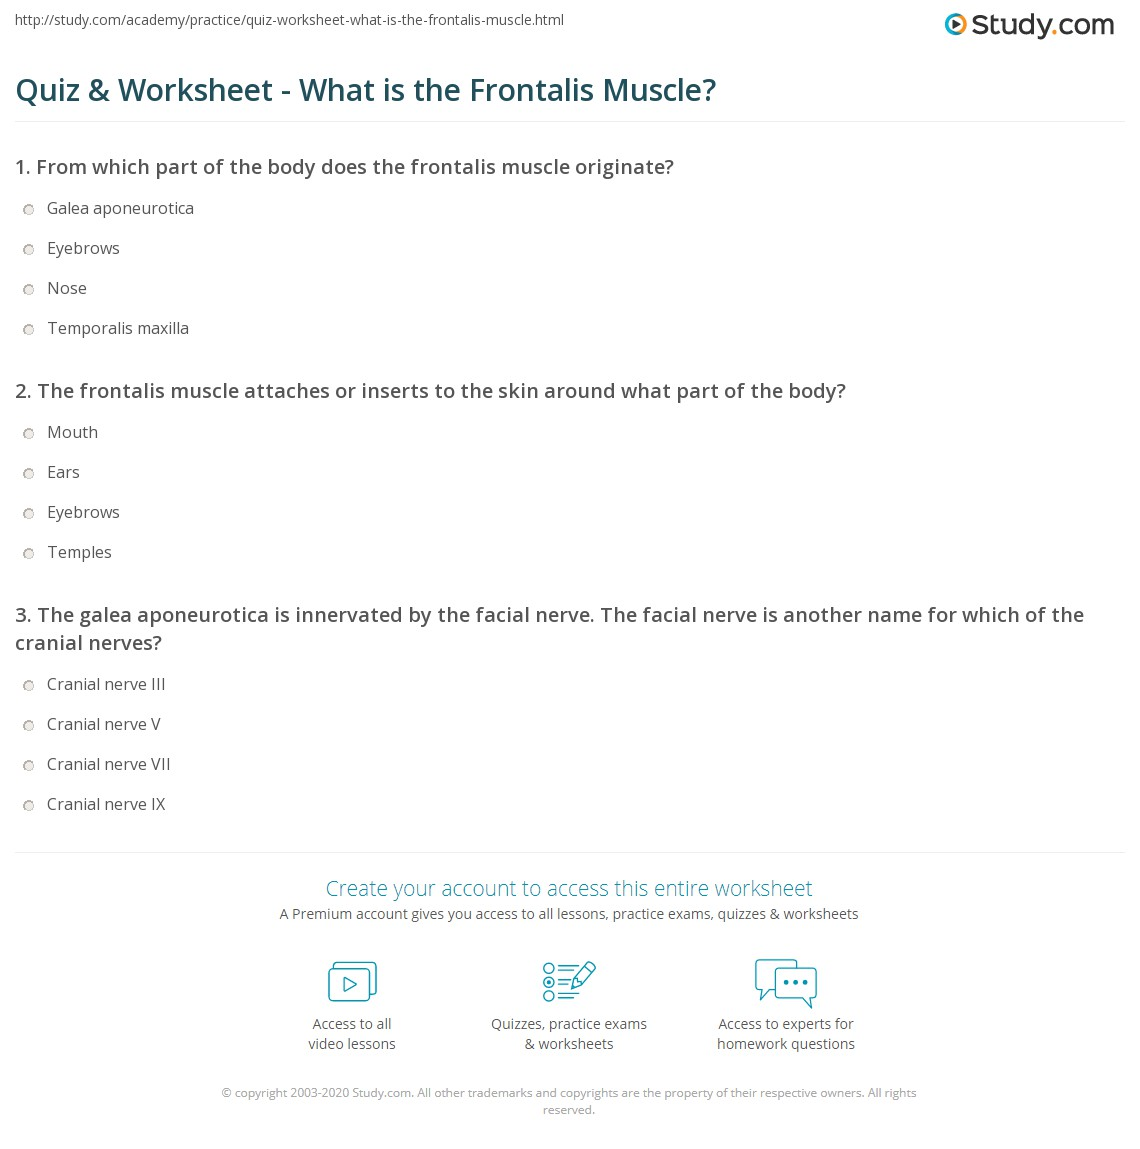 Quiz & Worksheet - What is the Frontalis Muscle?   Study.com